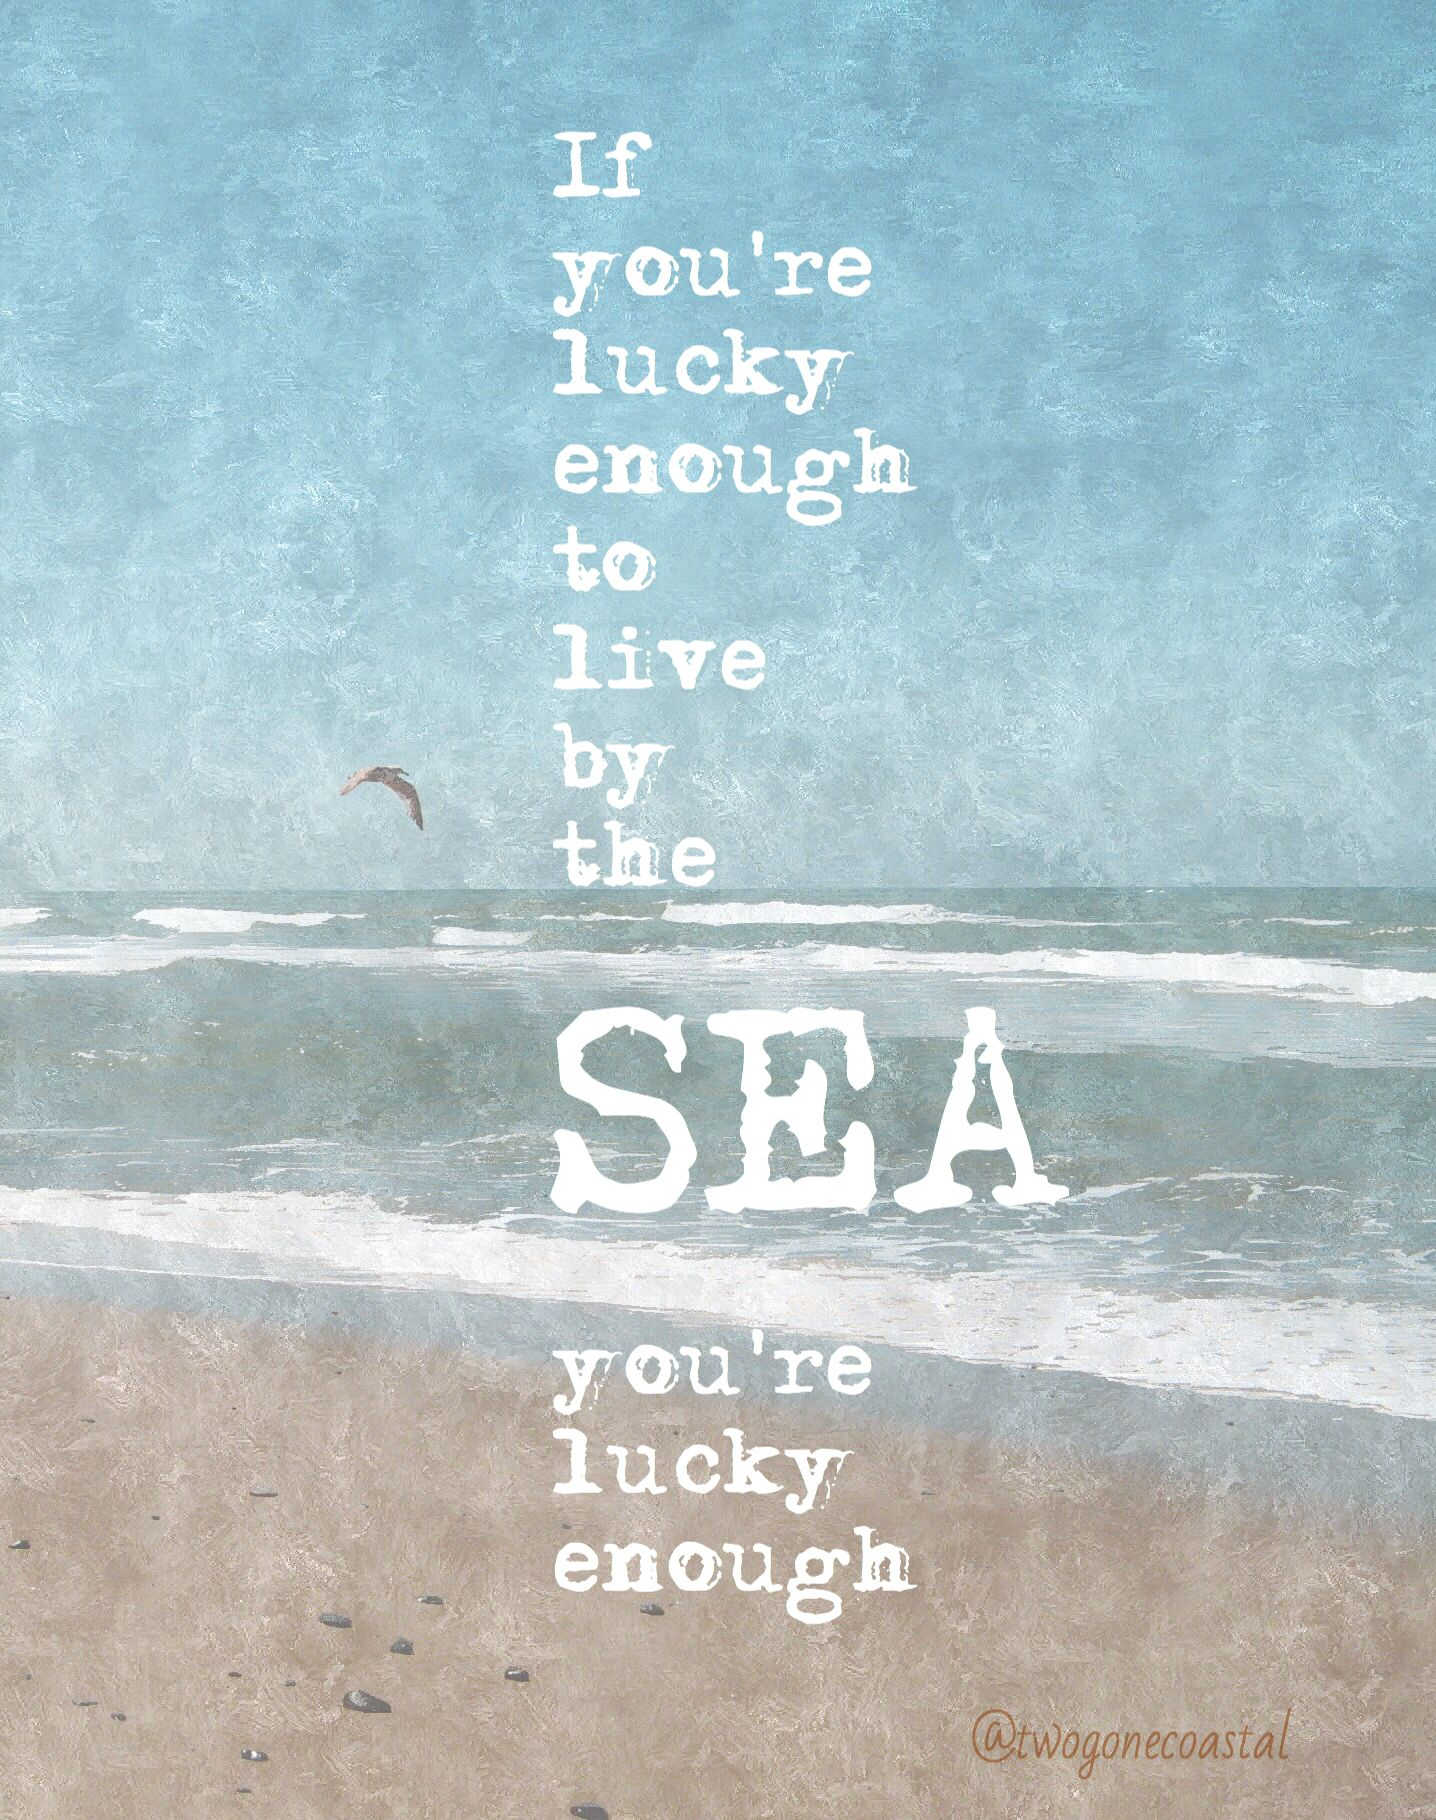 In other words, if you are lucky enough to live by the sea